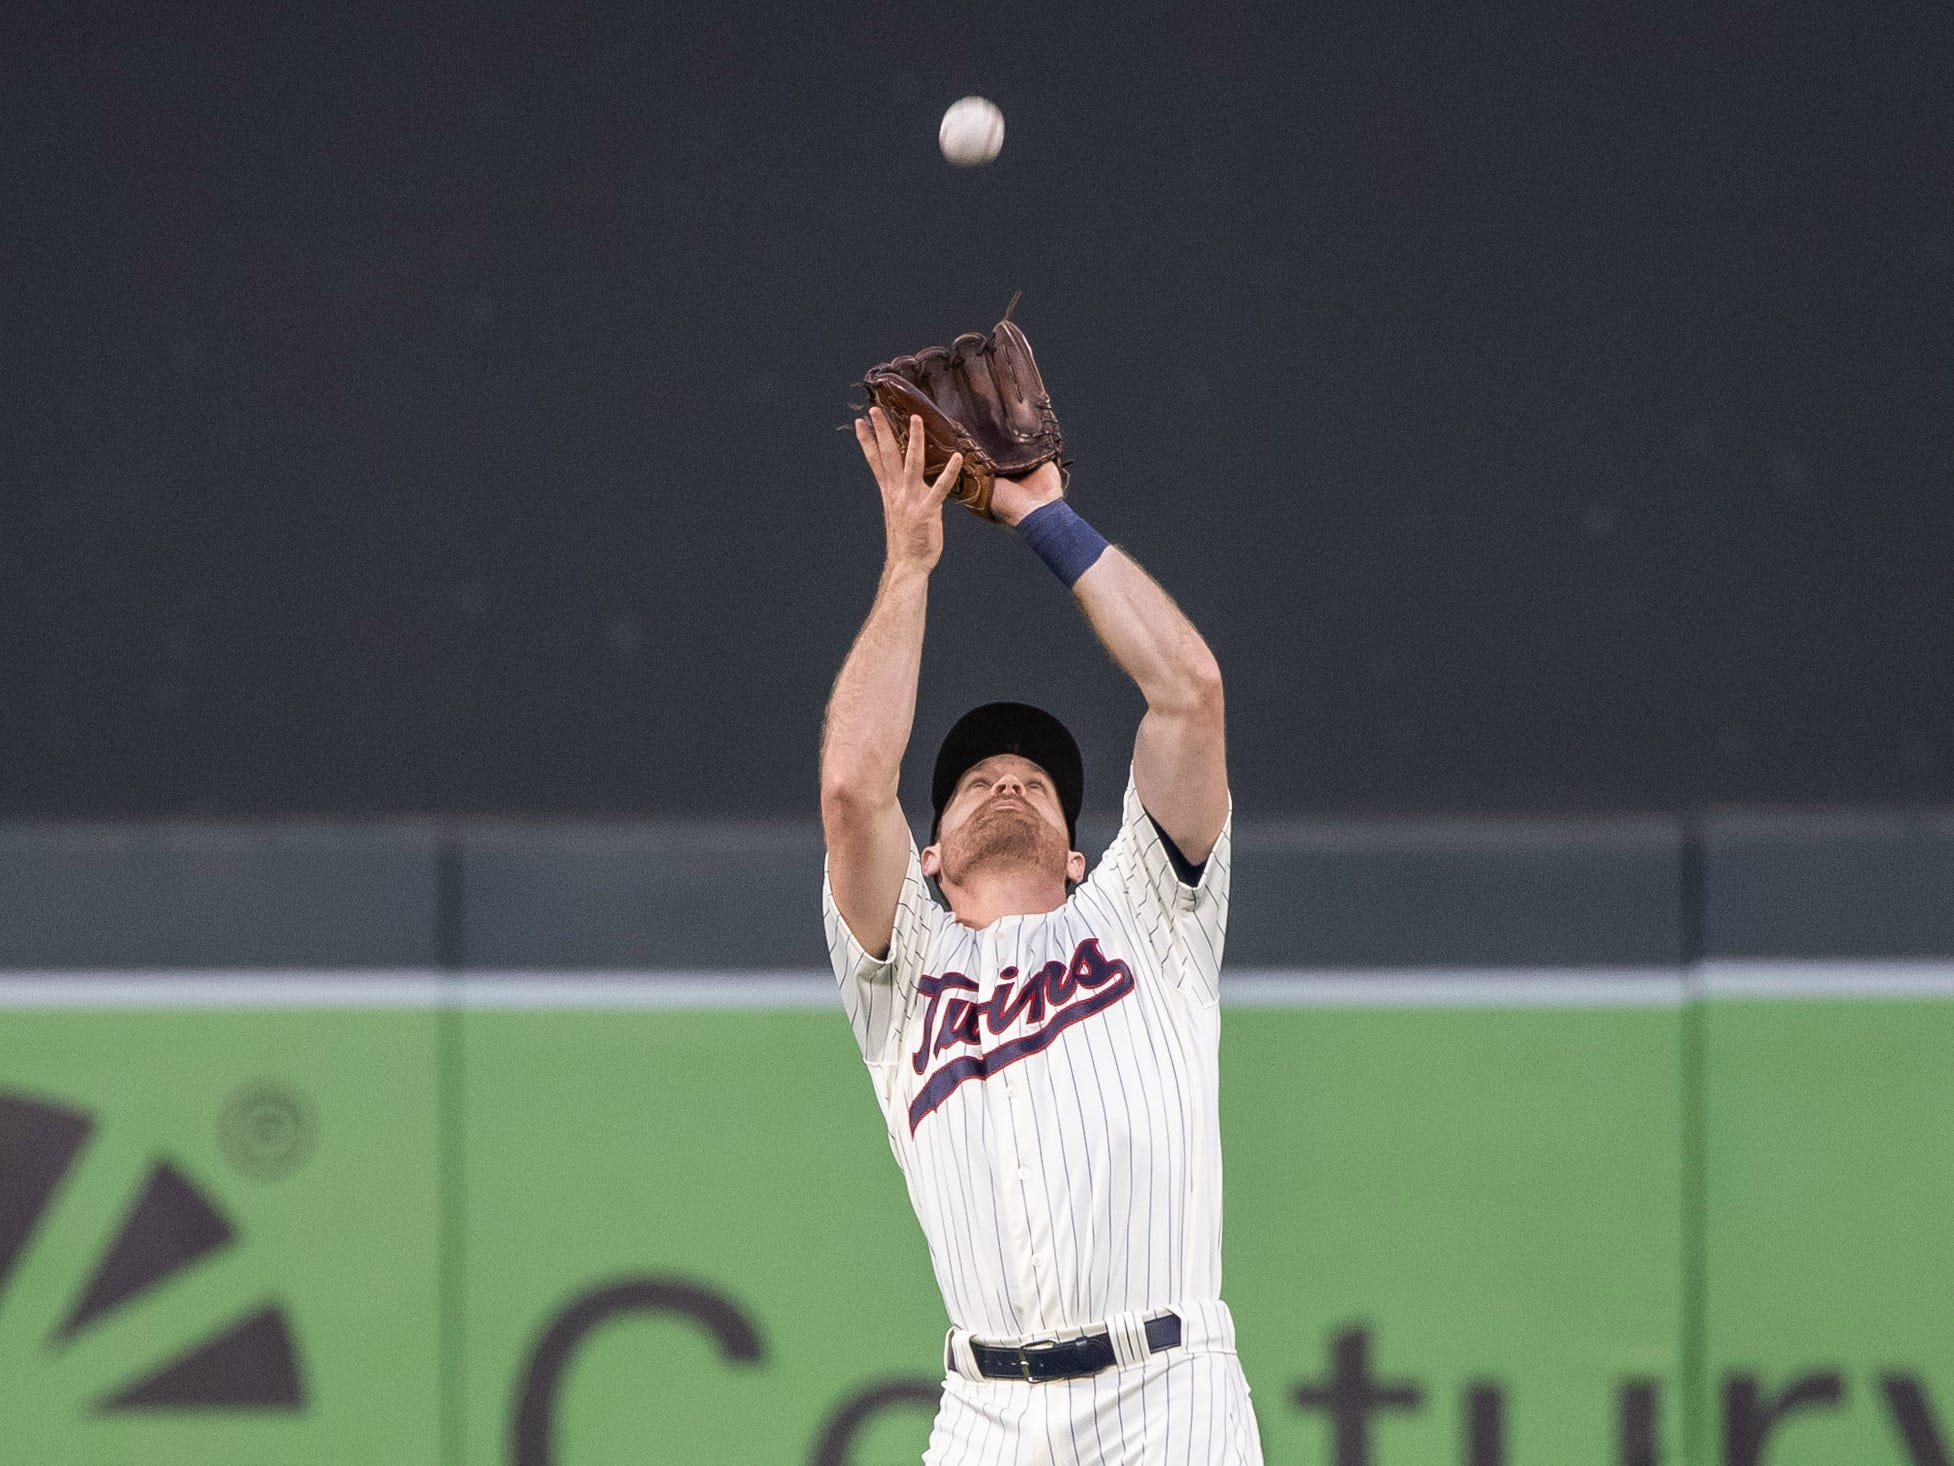 Sep 12, 2018; Minneapolis, MN, USA; Minnesota Twins second baseman Logan Forsythe (24) catches the ball for the out during the first inning against the New York Yankees at Target Field.